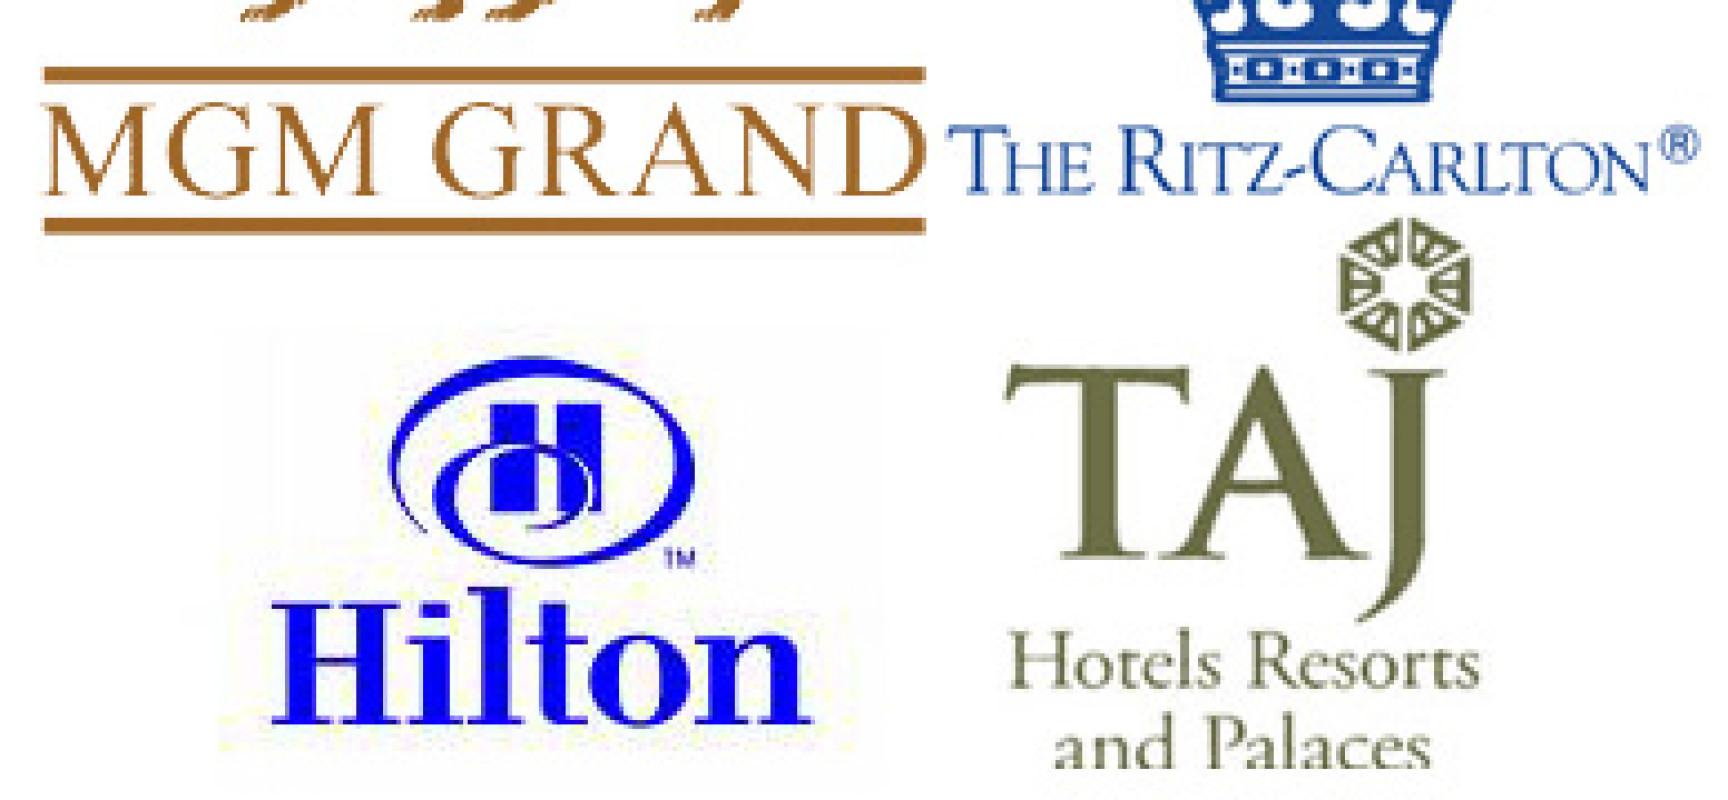 Hotel chain logos gallery for Design hotel chain